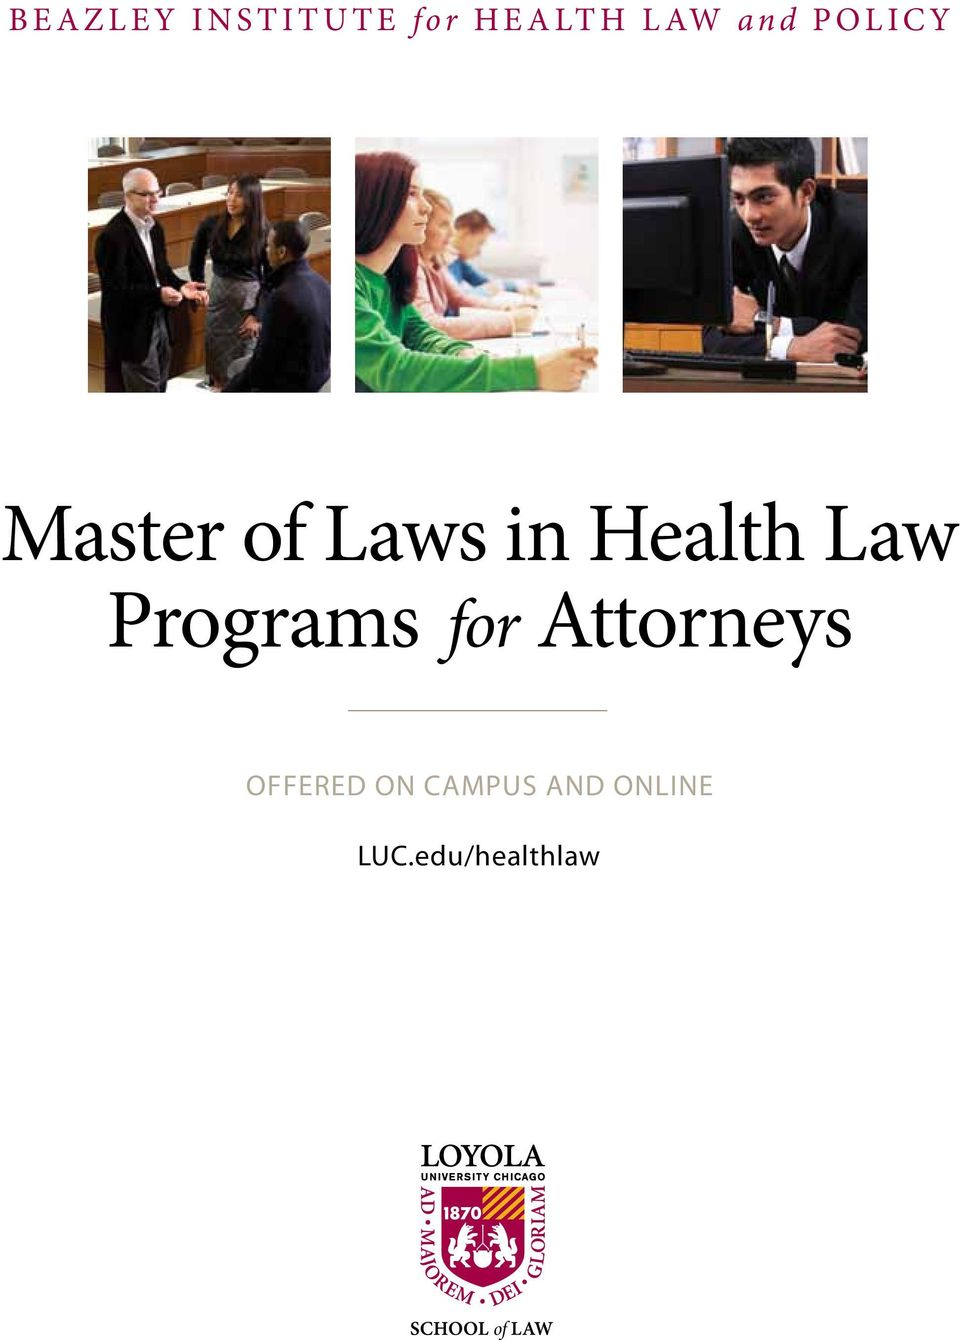 Master of Laws in Health Law Programs